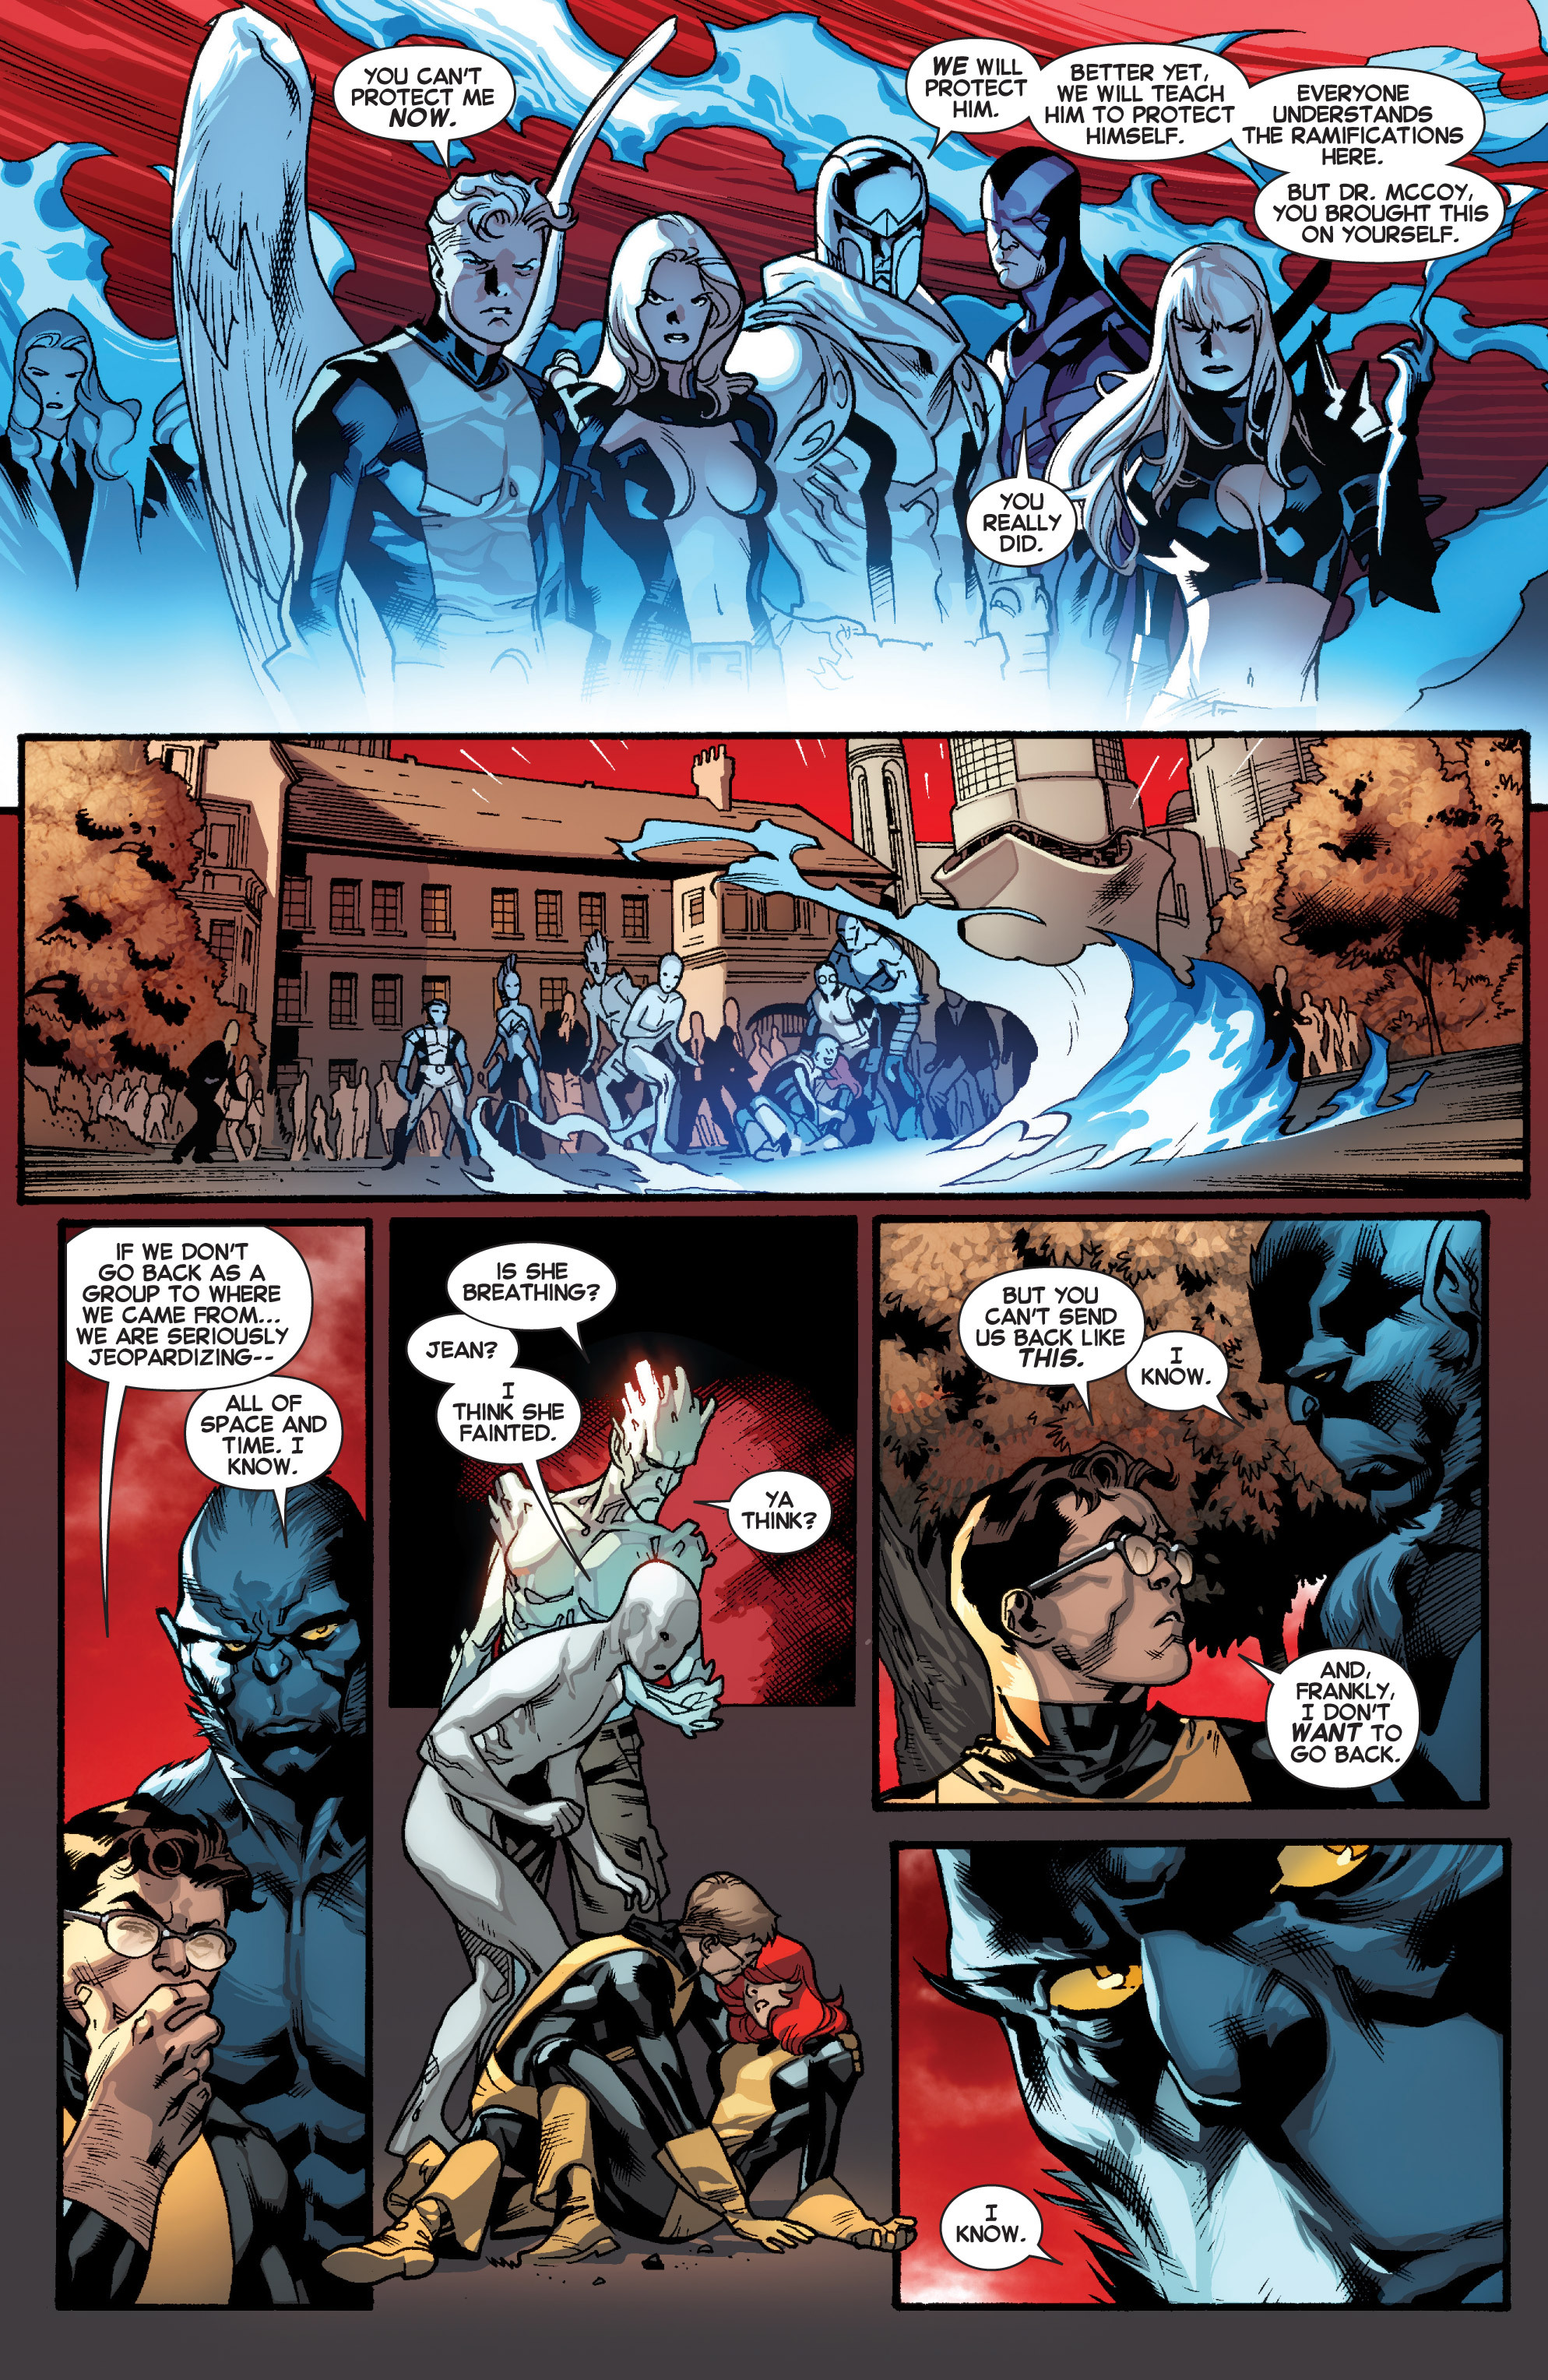 Read online All-New X-Men (2013) comic -  Issue # _Special - Out Of Their Depth - 14